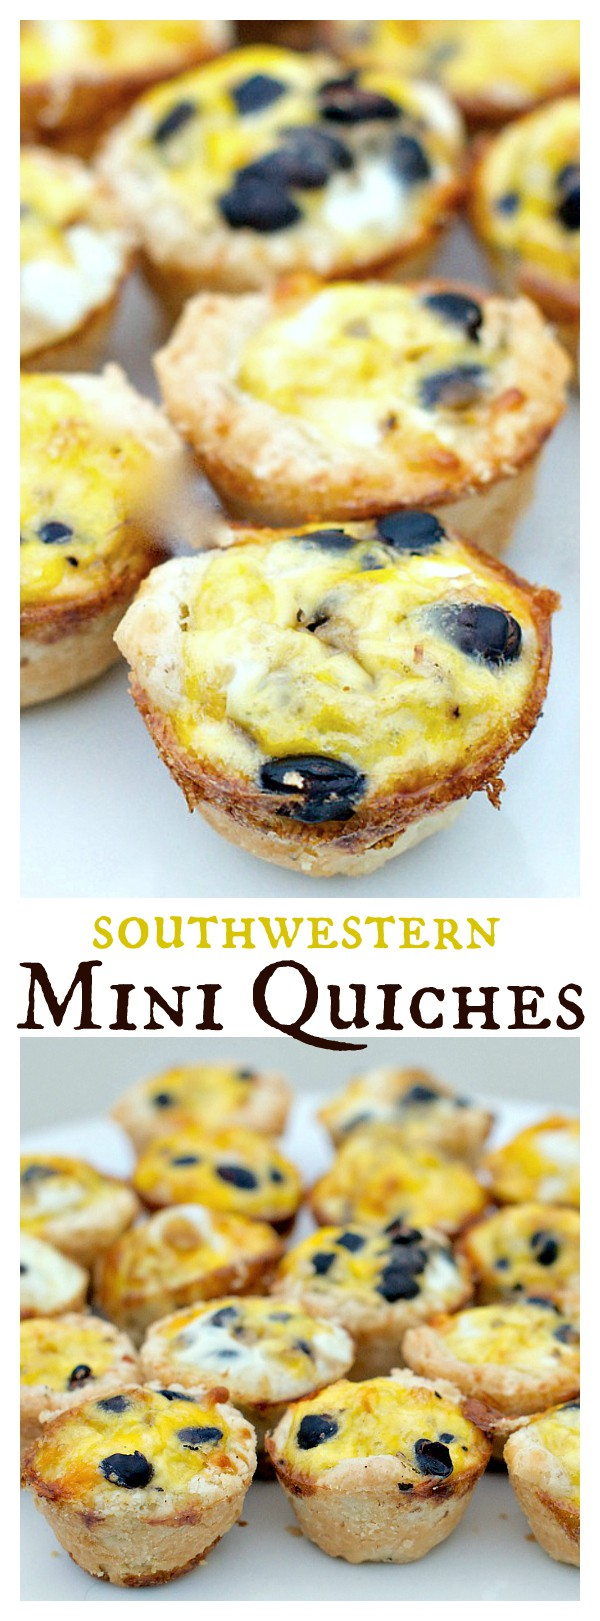 Southwestern Mini Quiches